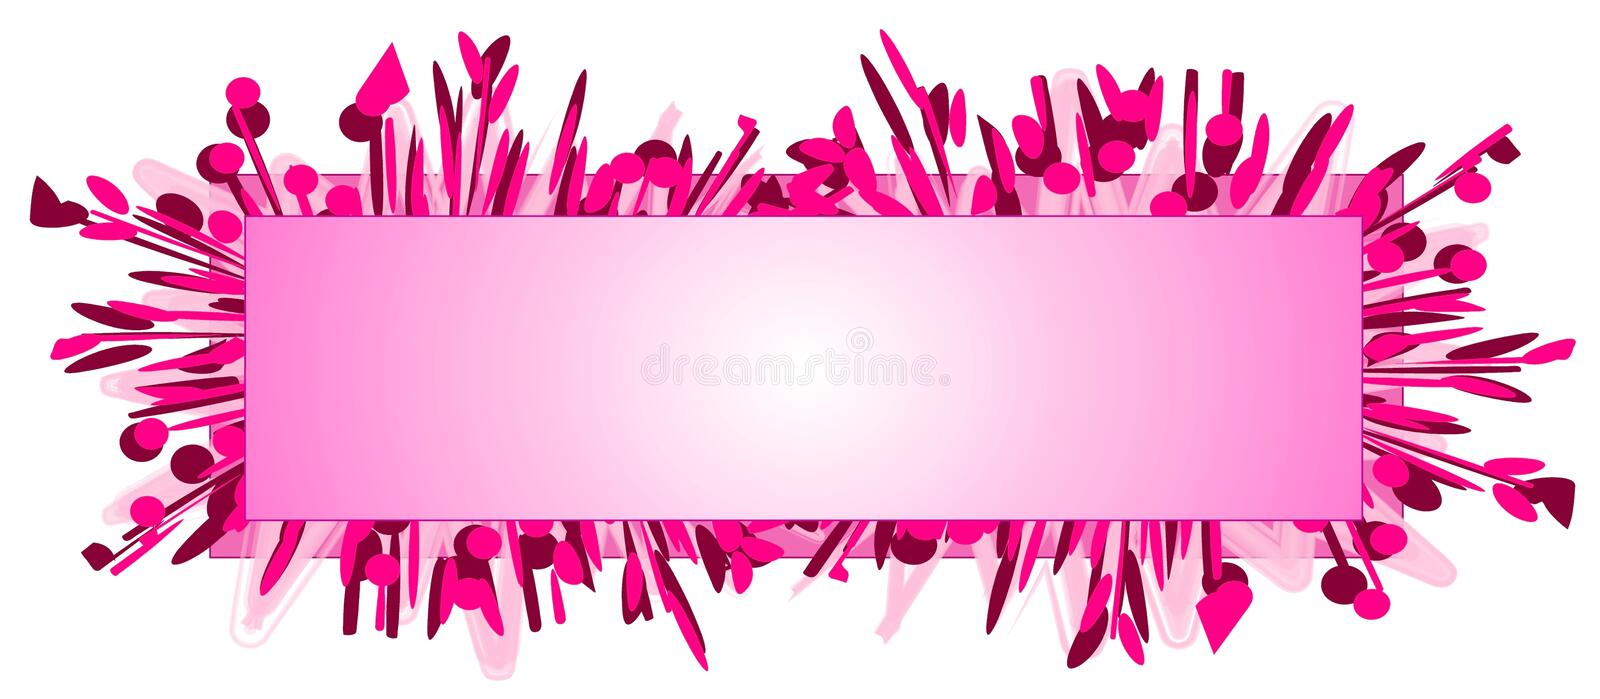 Web Page Logo Pink Fashion vector illustration